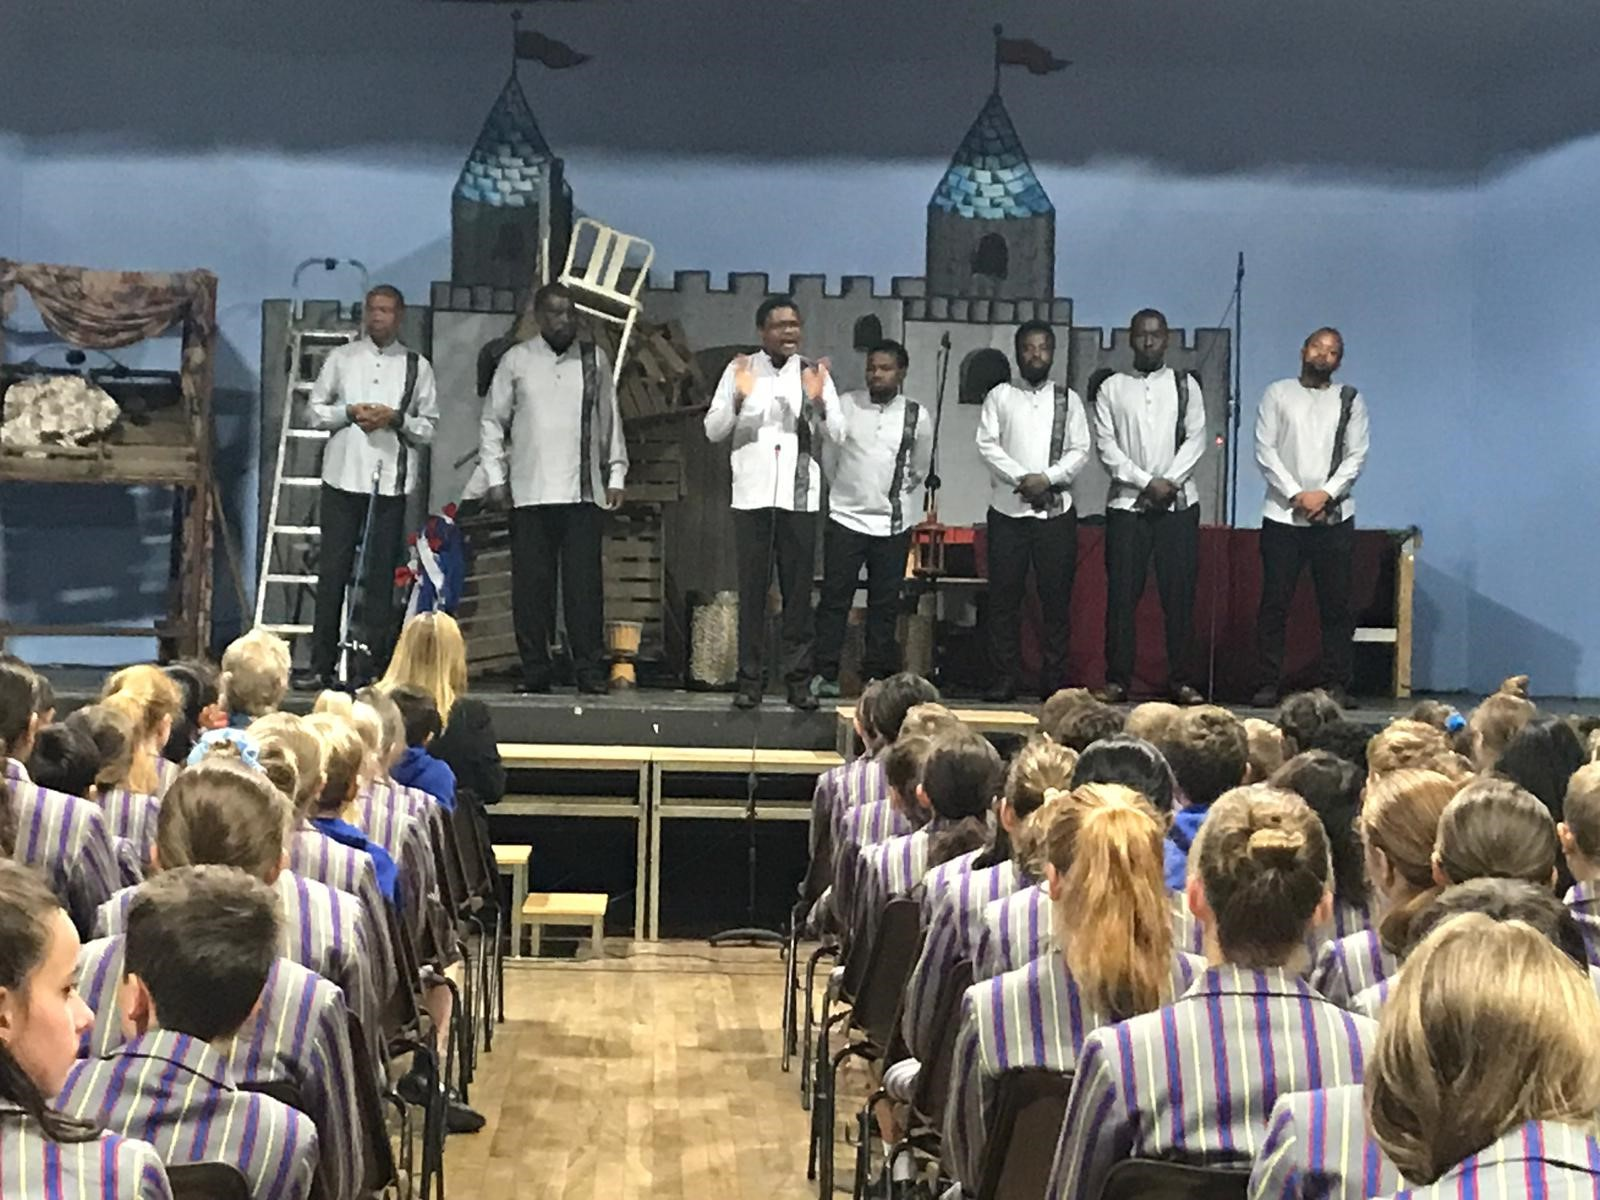 New Life Band from Tanzania Perform for Students at Kidderminster School